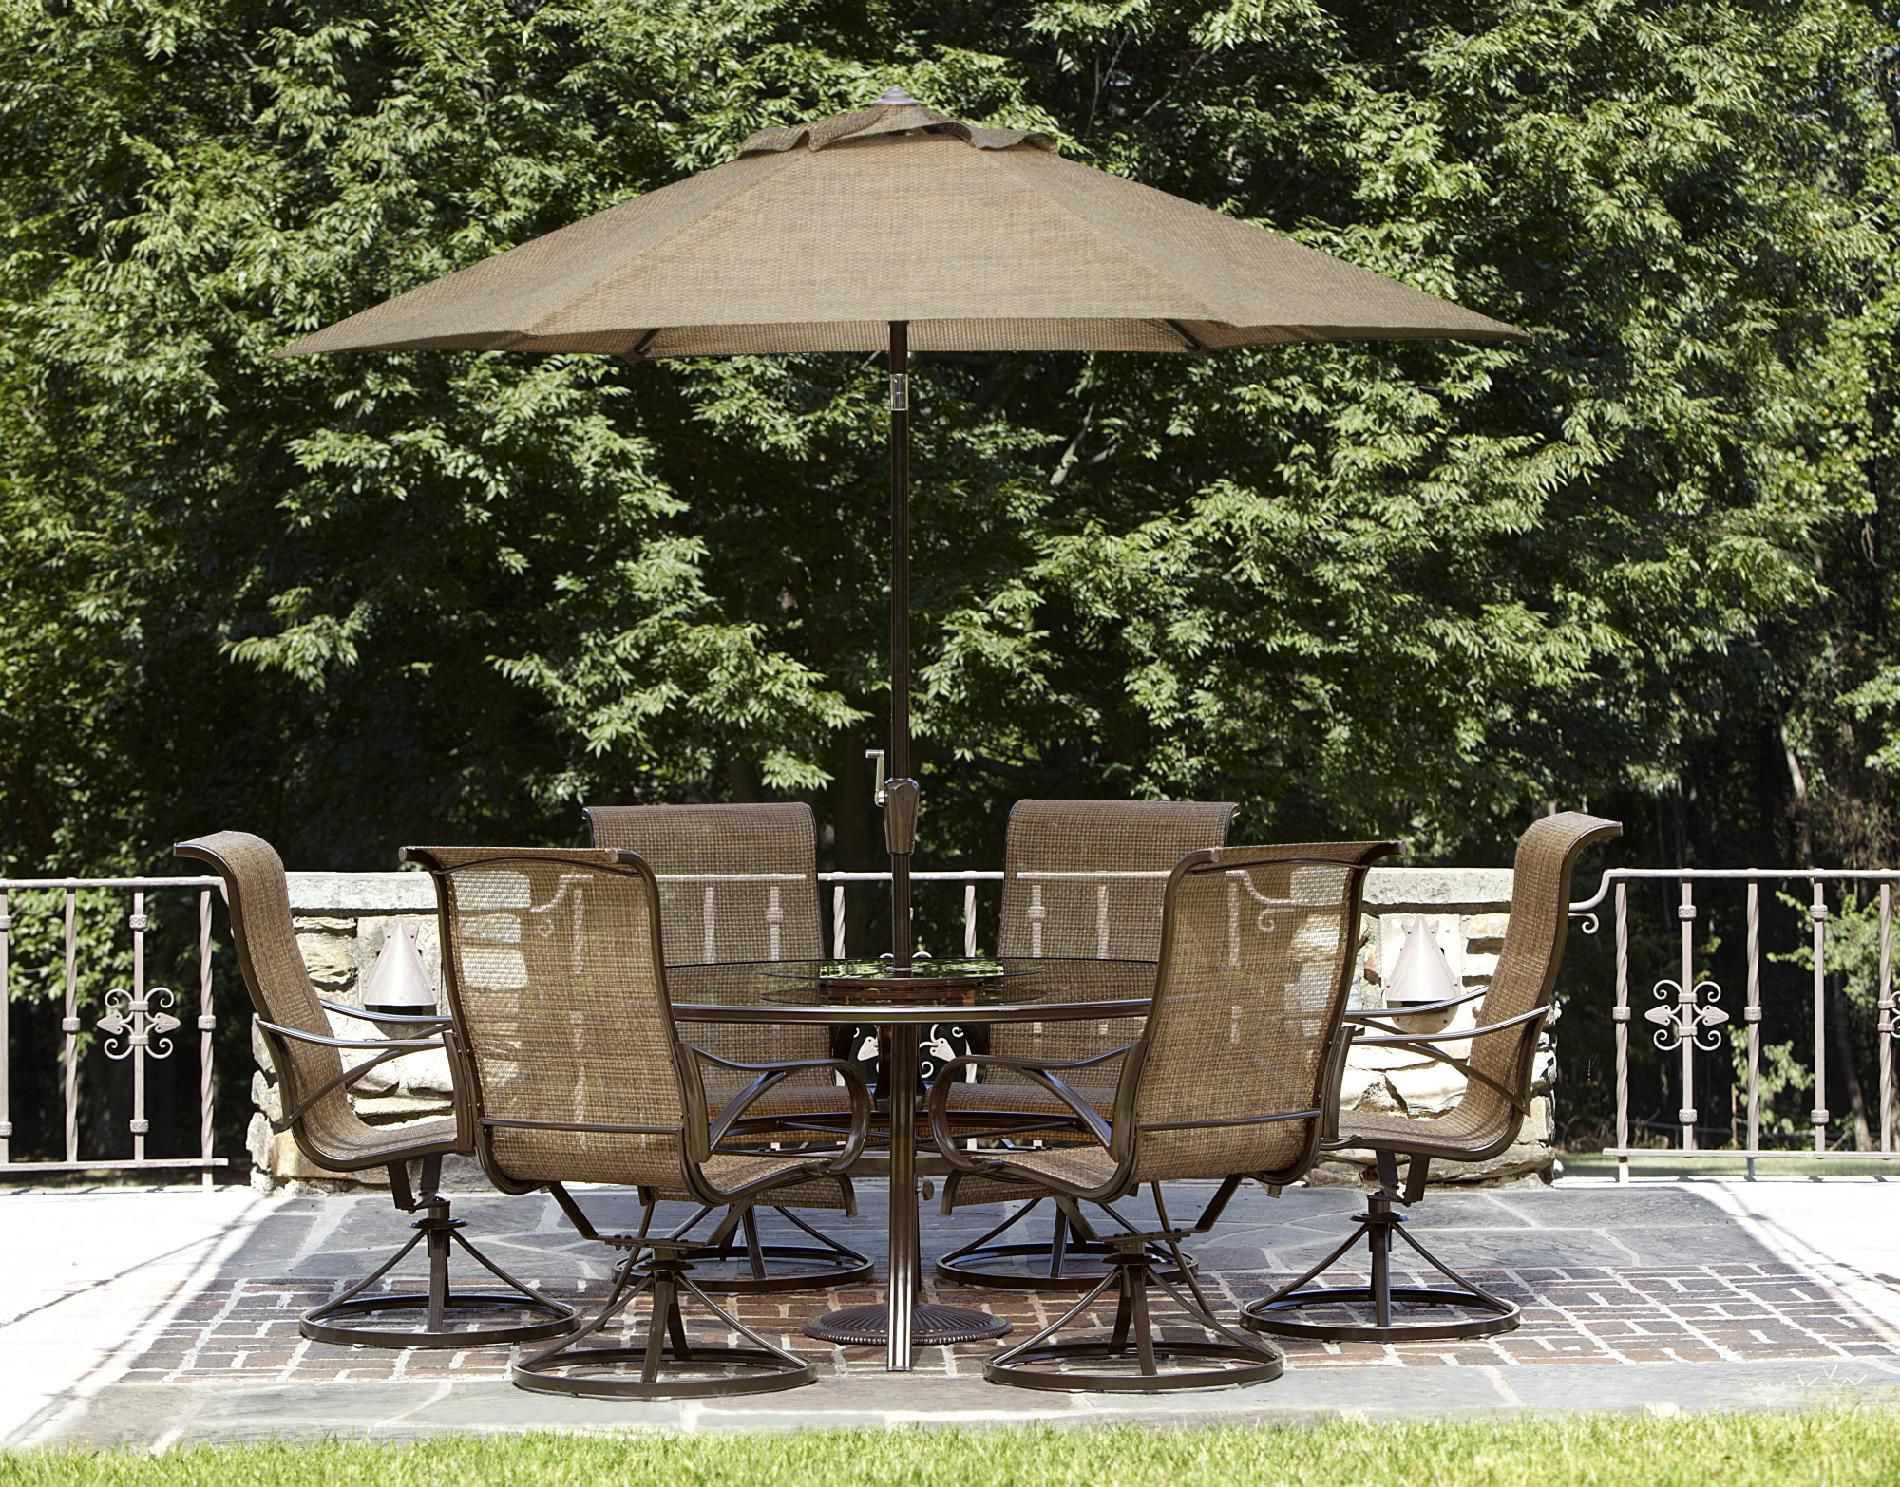 Outdoor Patio Umbrellas at Home and Interior Design Ideas